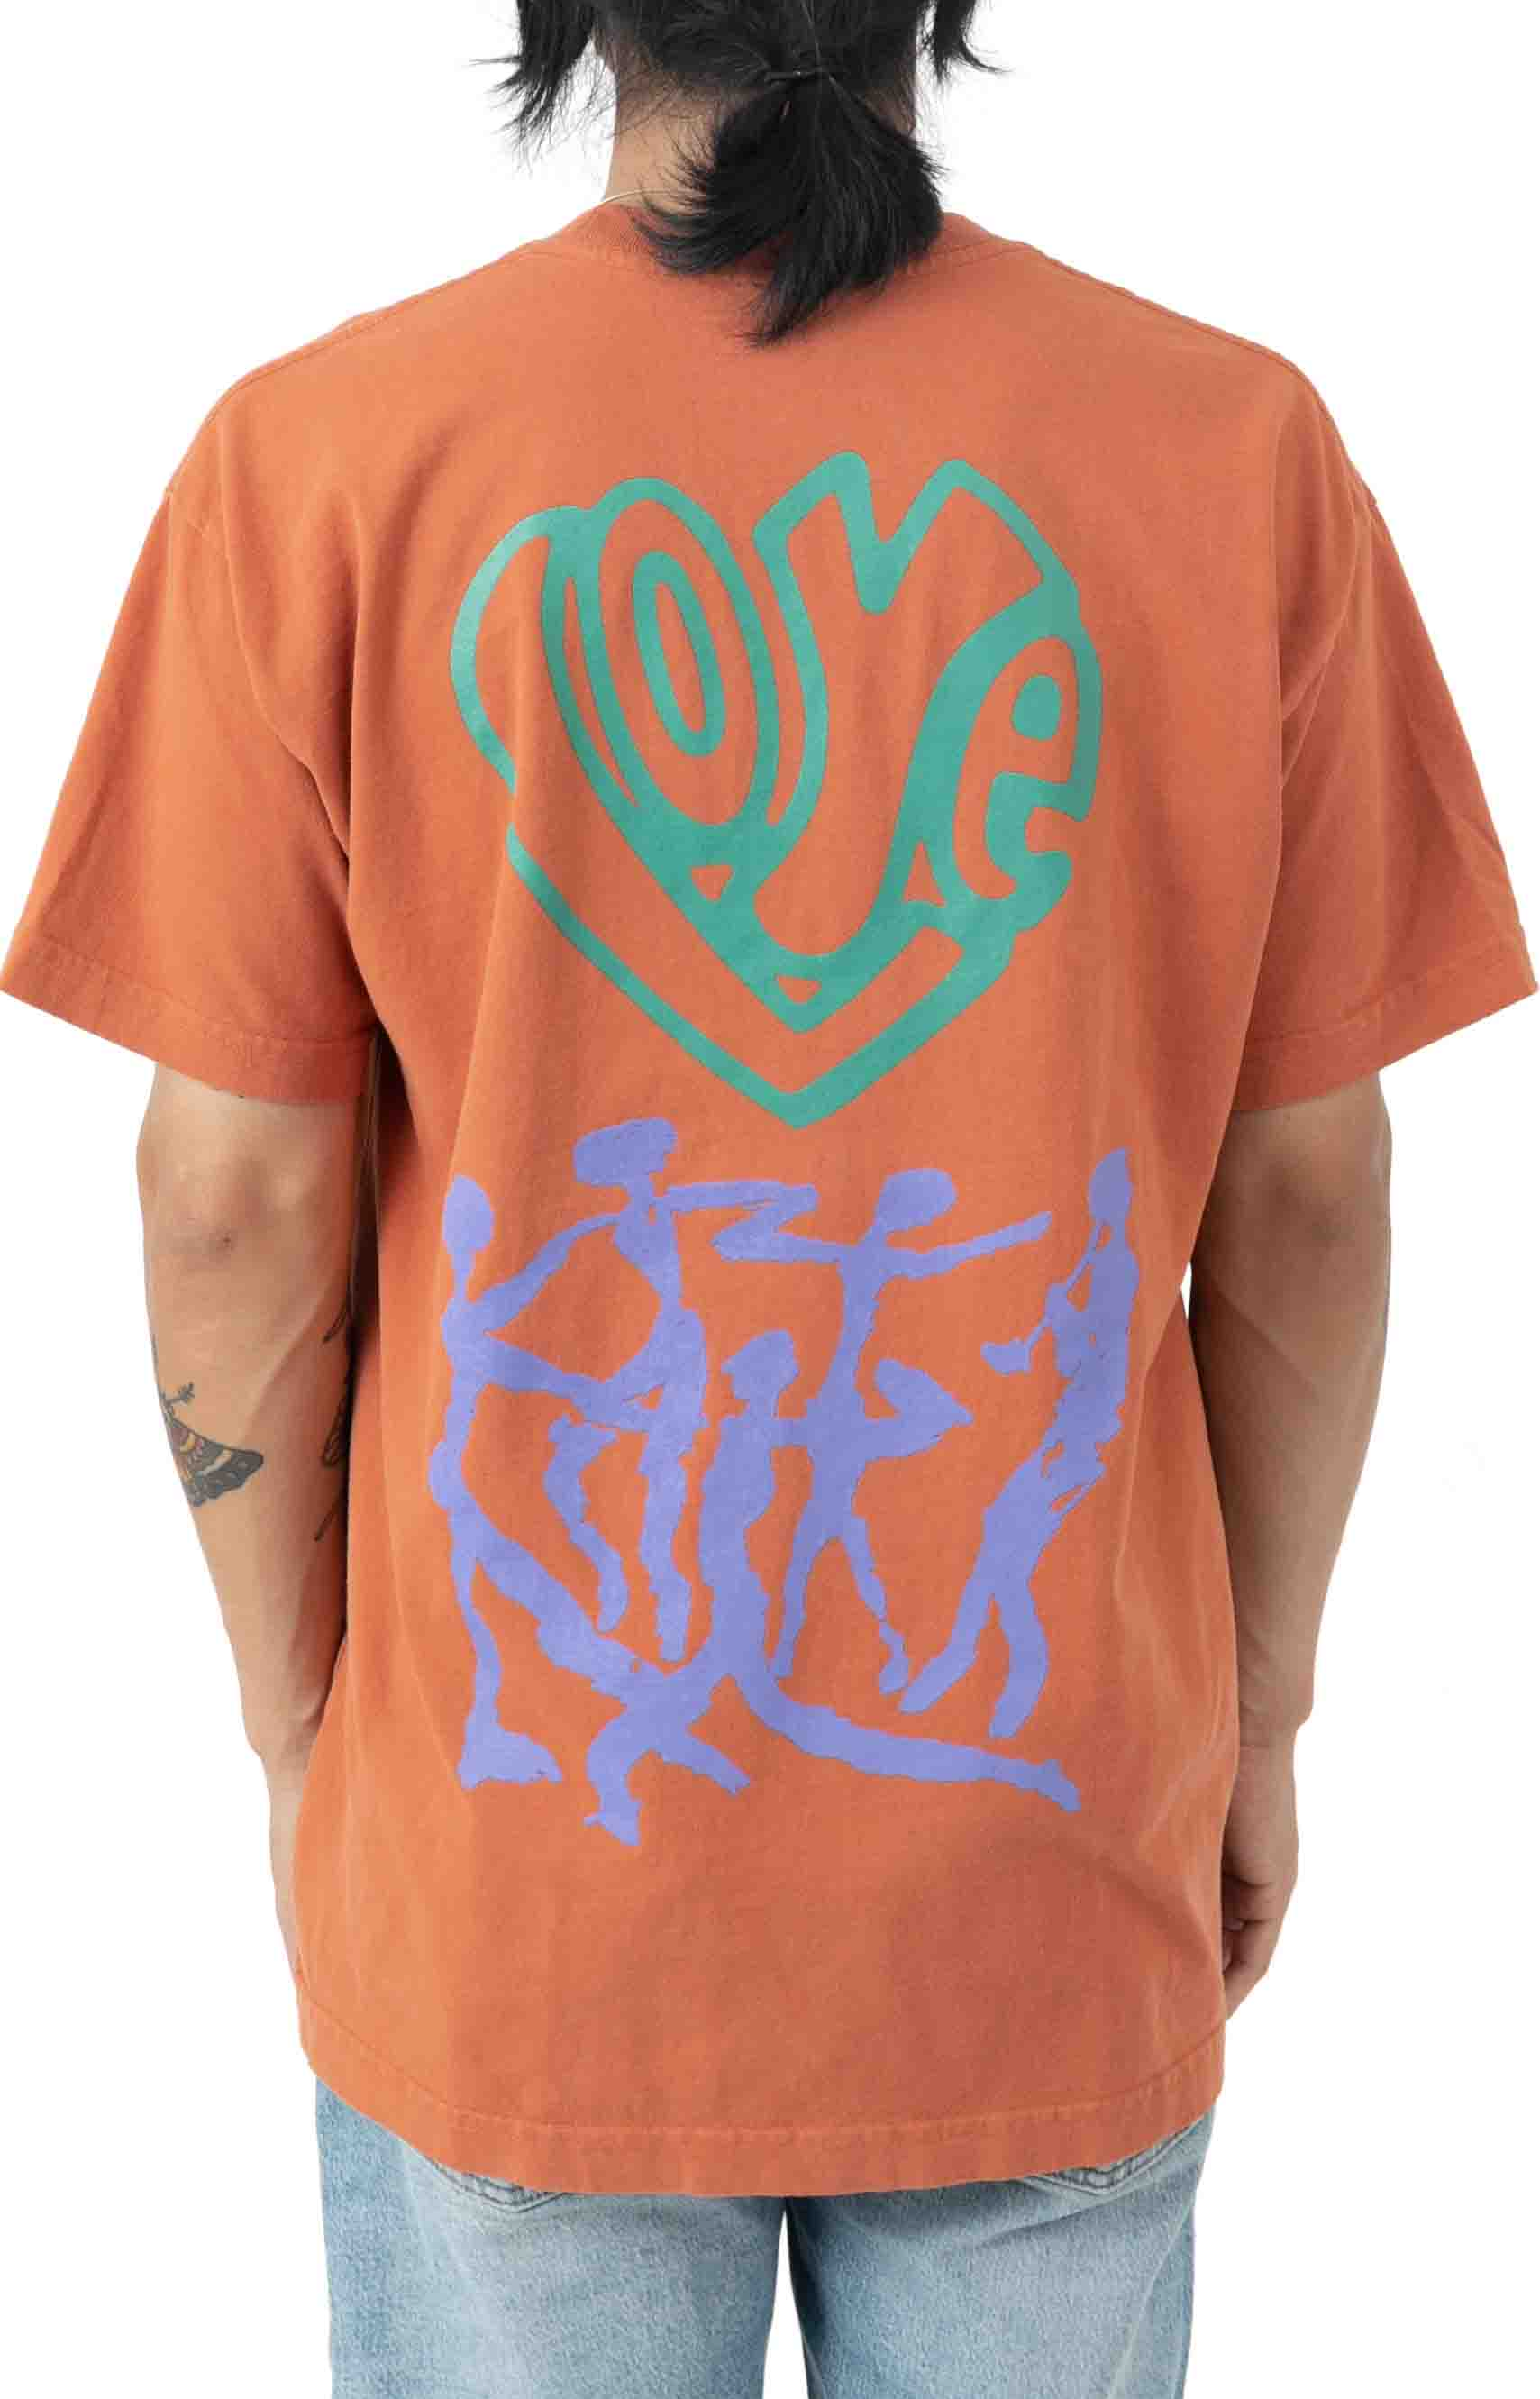 Love Over Hate T-Shirt - Ginger